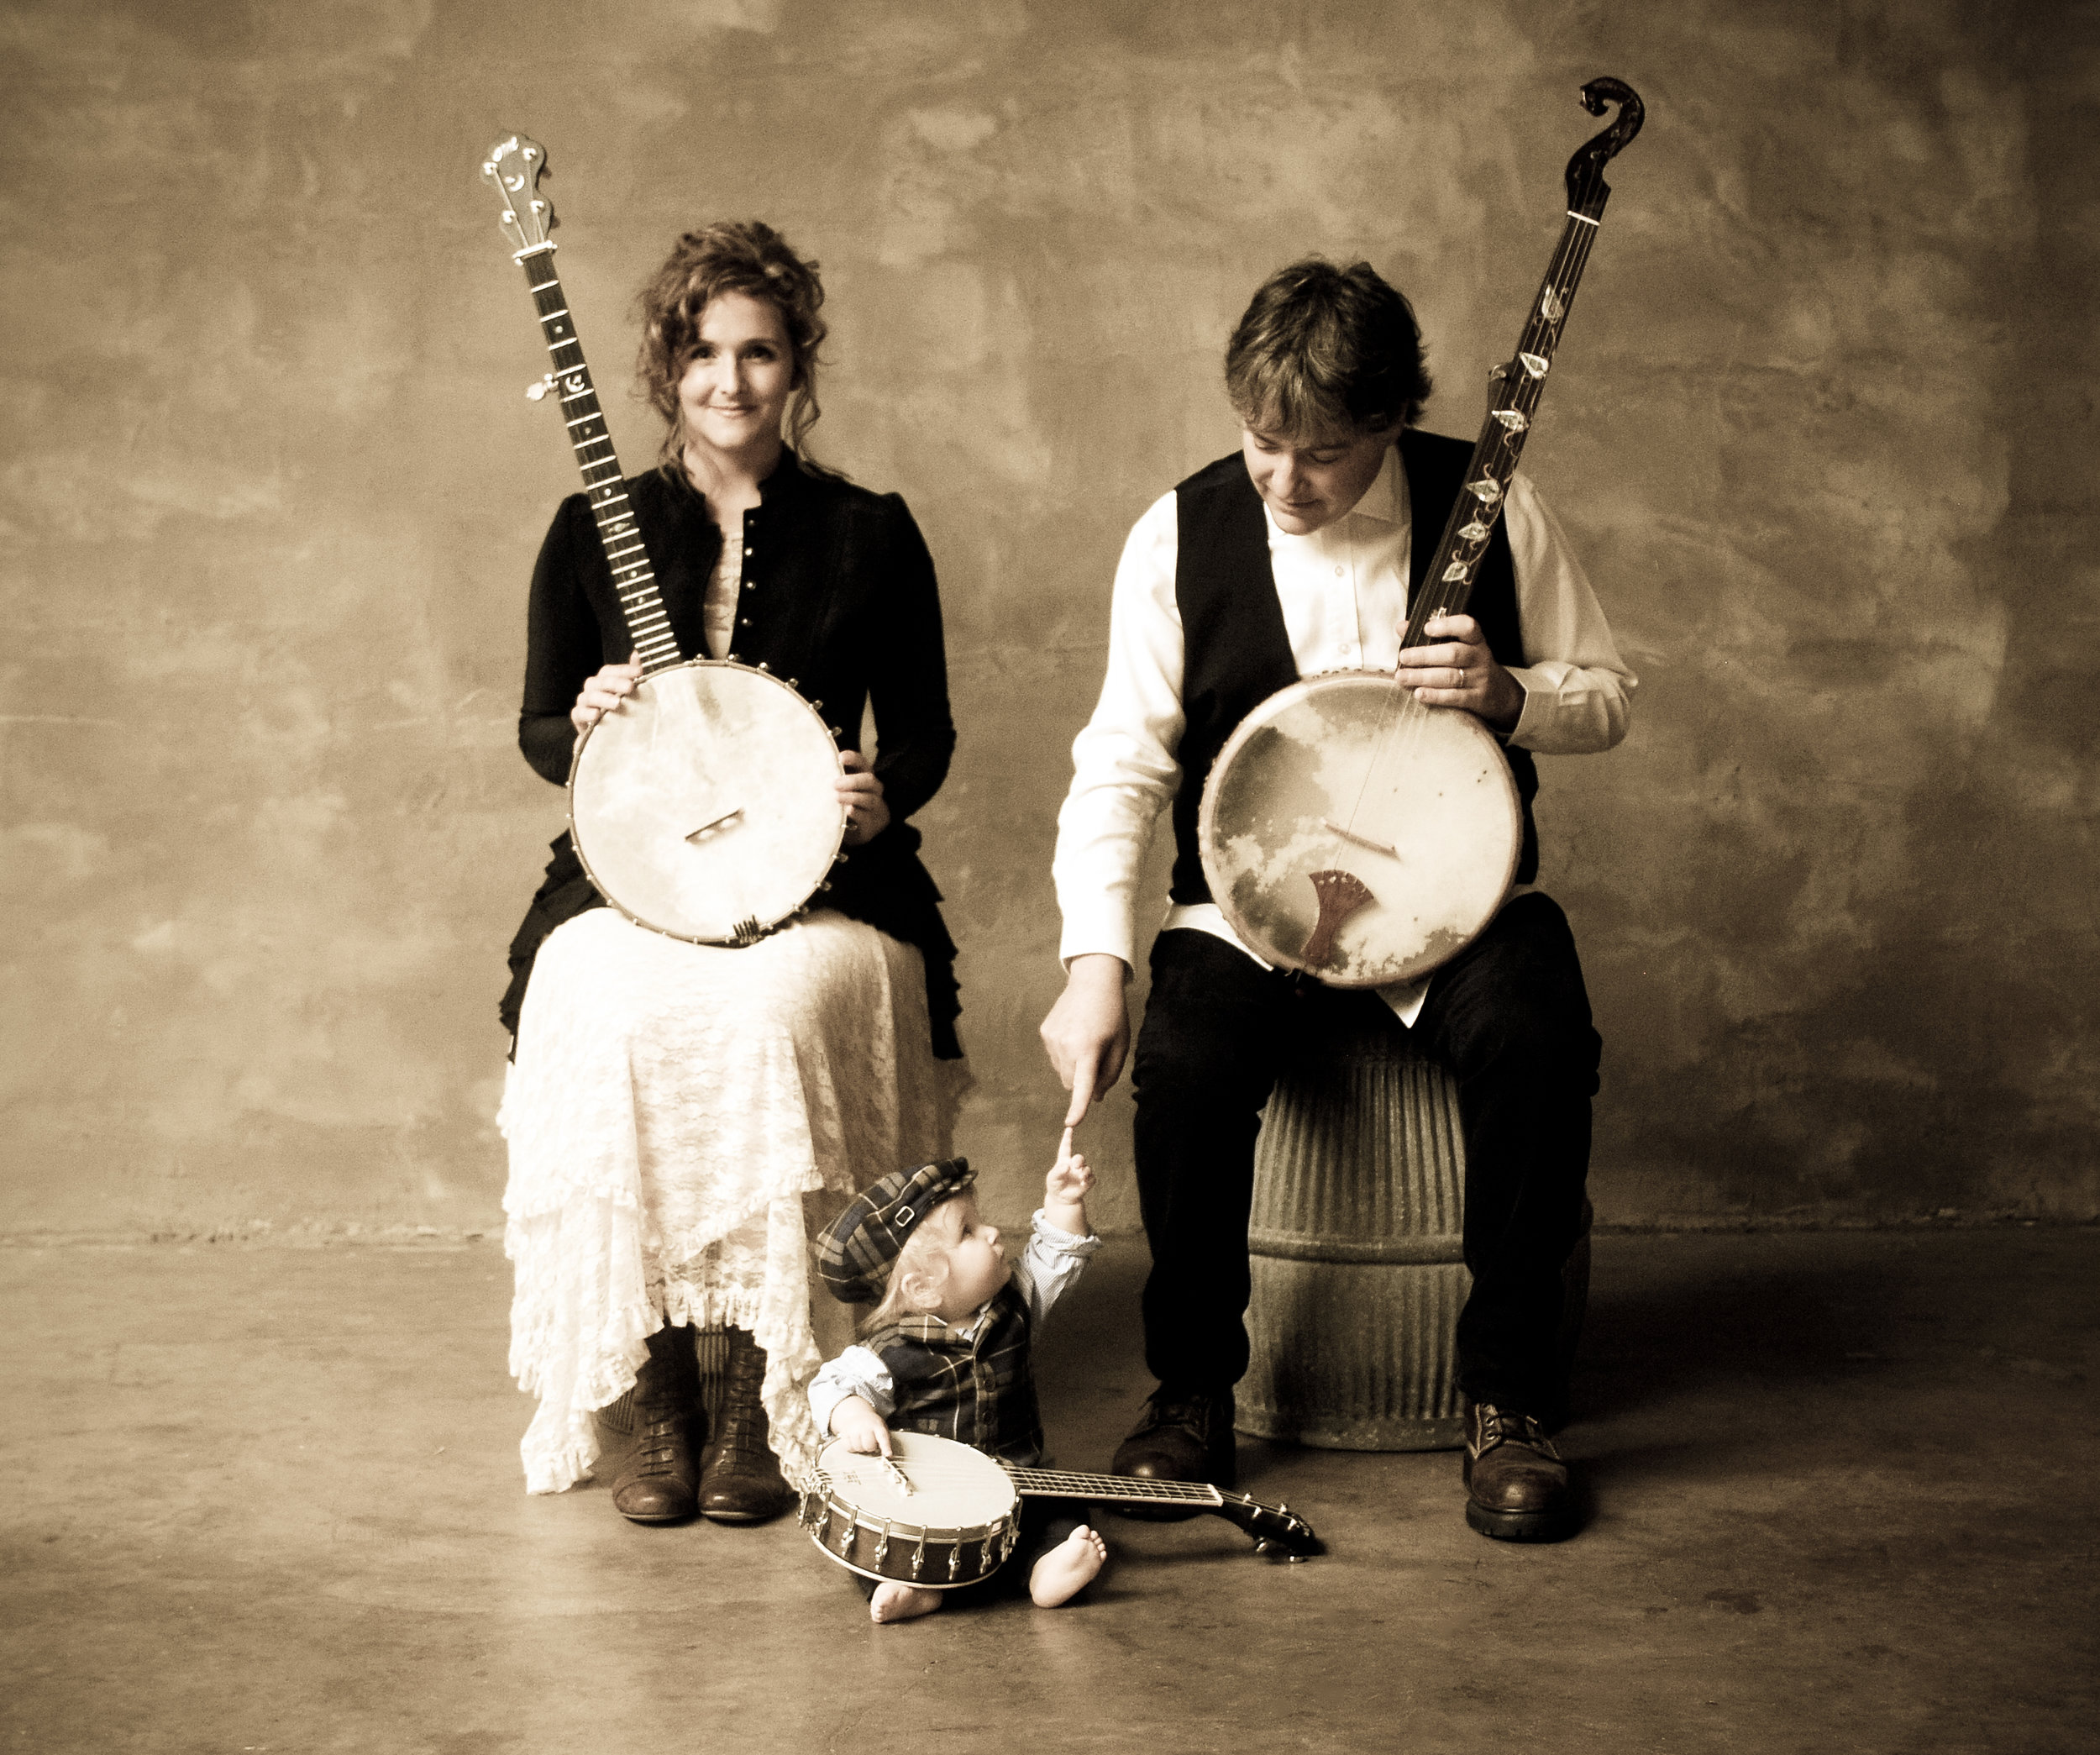 (Left to right) Abigail Washburn, their child, Juno Fleck and Béla Fleck, photo by Jim McGuire